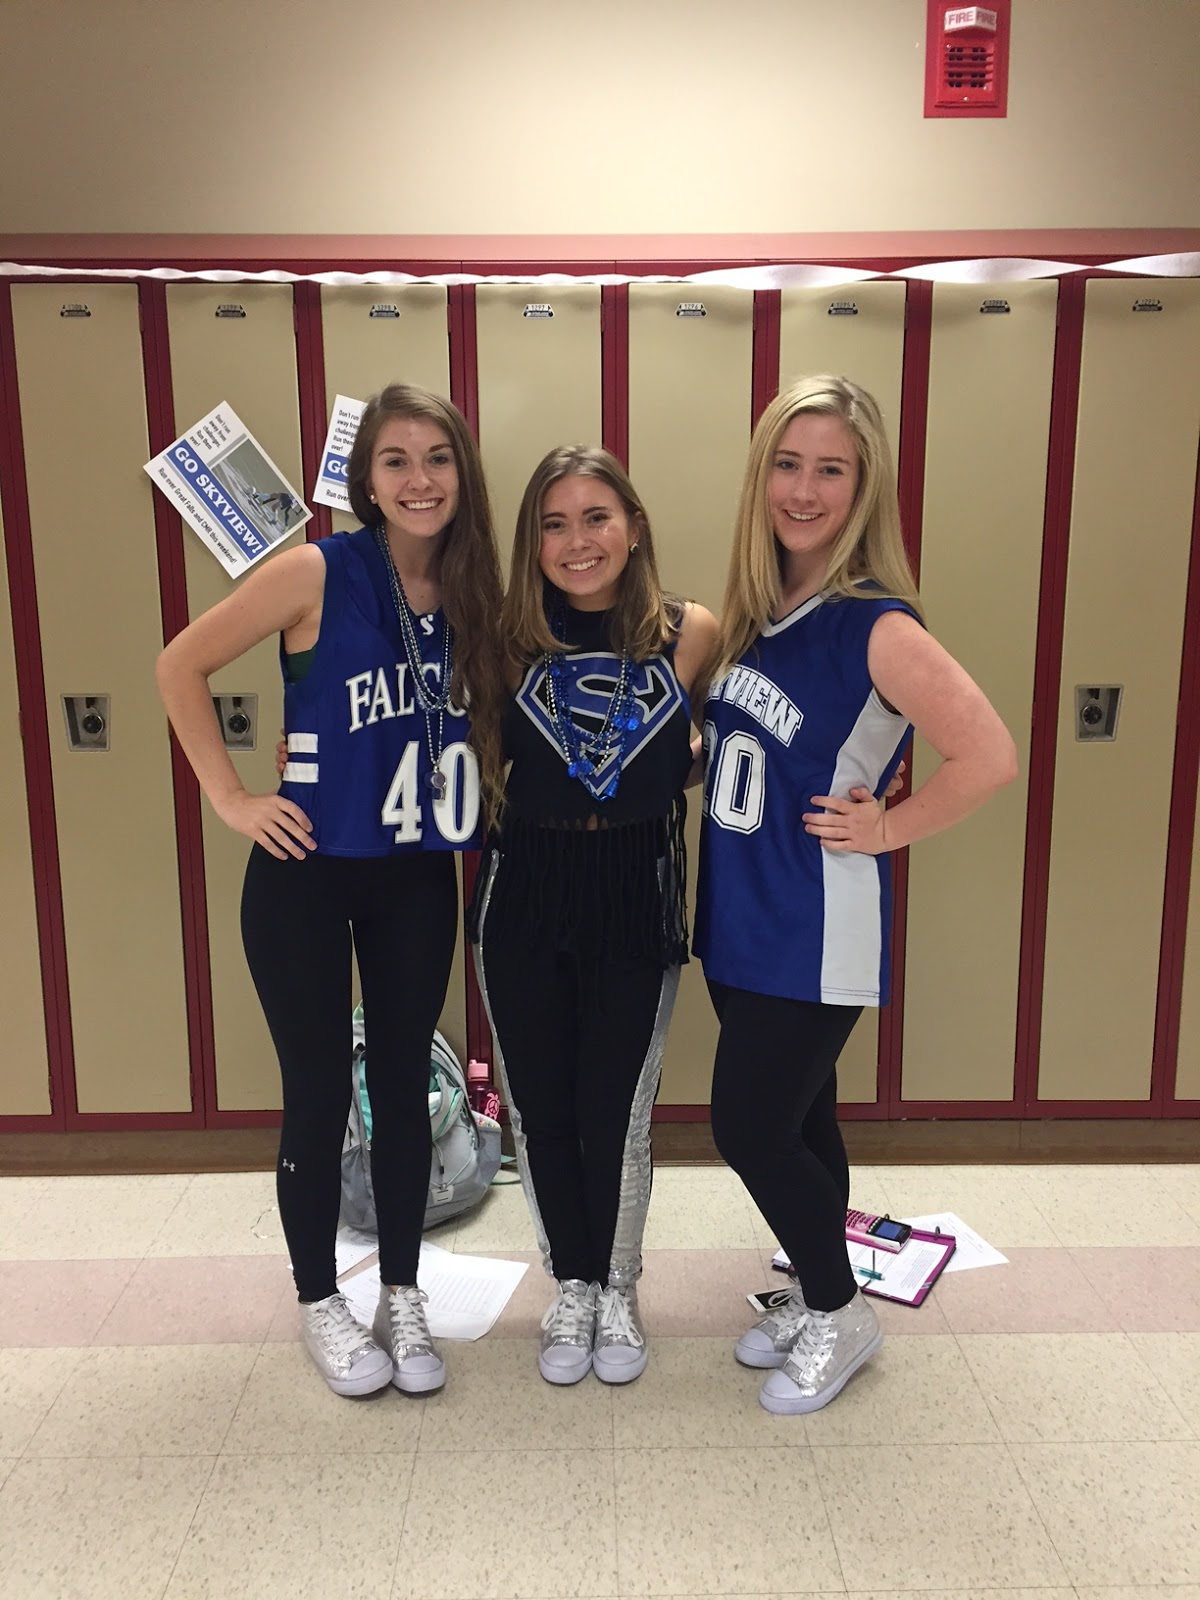 Senior Year Is That Homecoming Week Means What You Wear Daily Differs From The Underclassmen Cara And Her Friends Carefully Planned Their Outfits